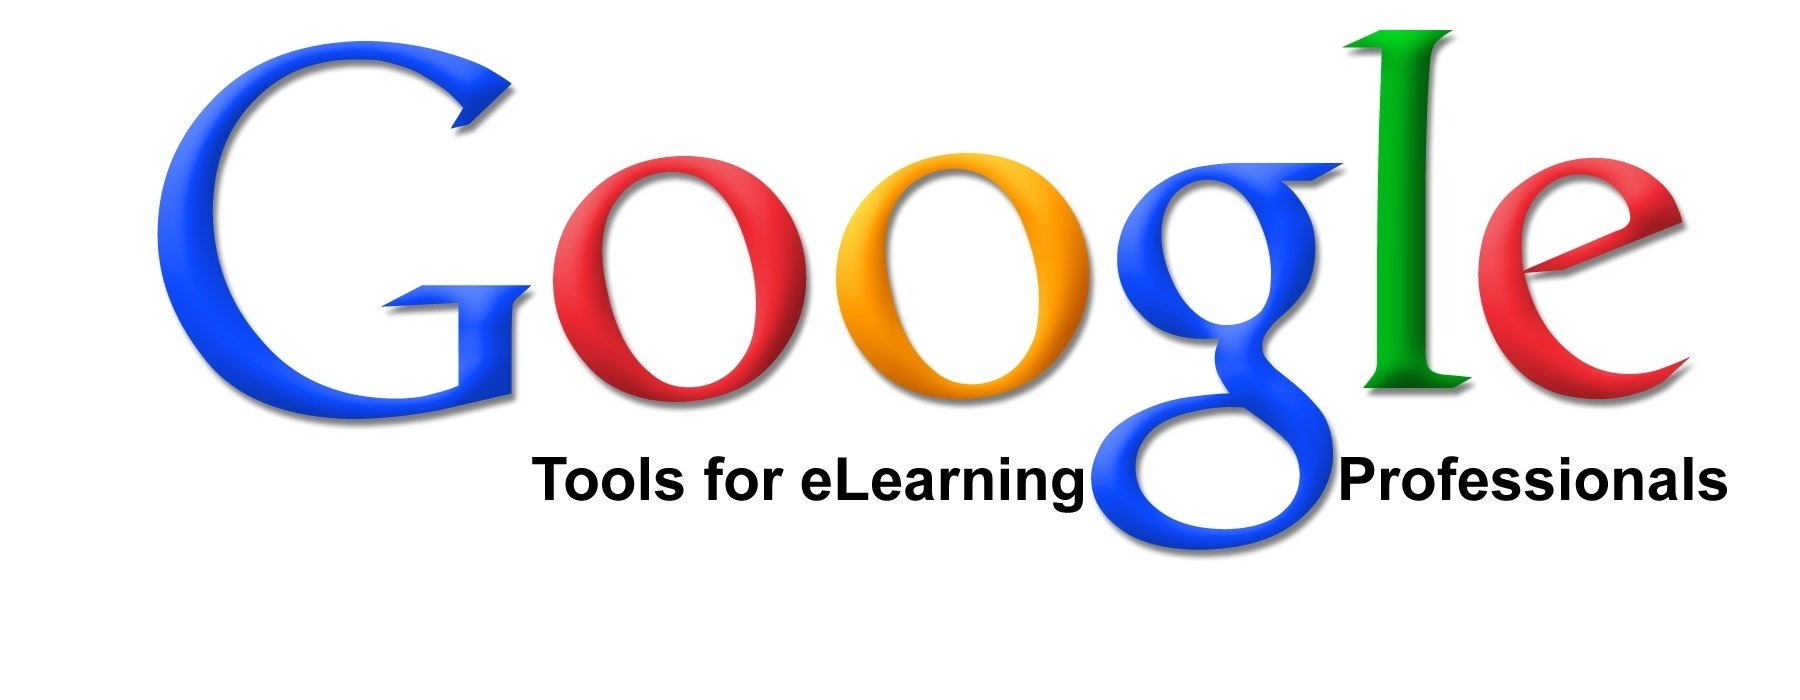 Google Tools for eLearning Professionals